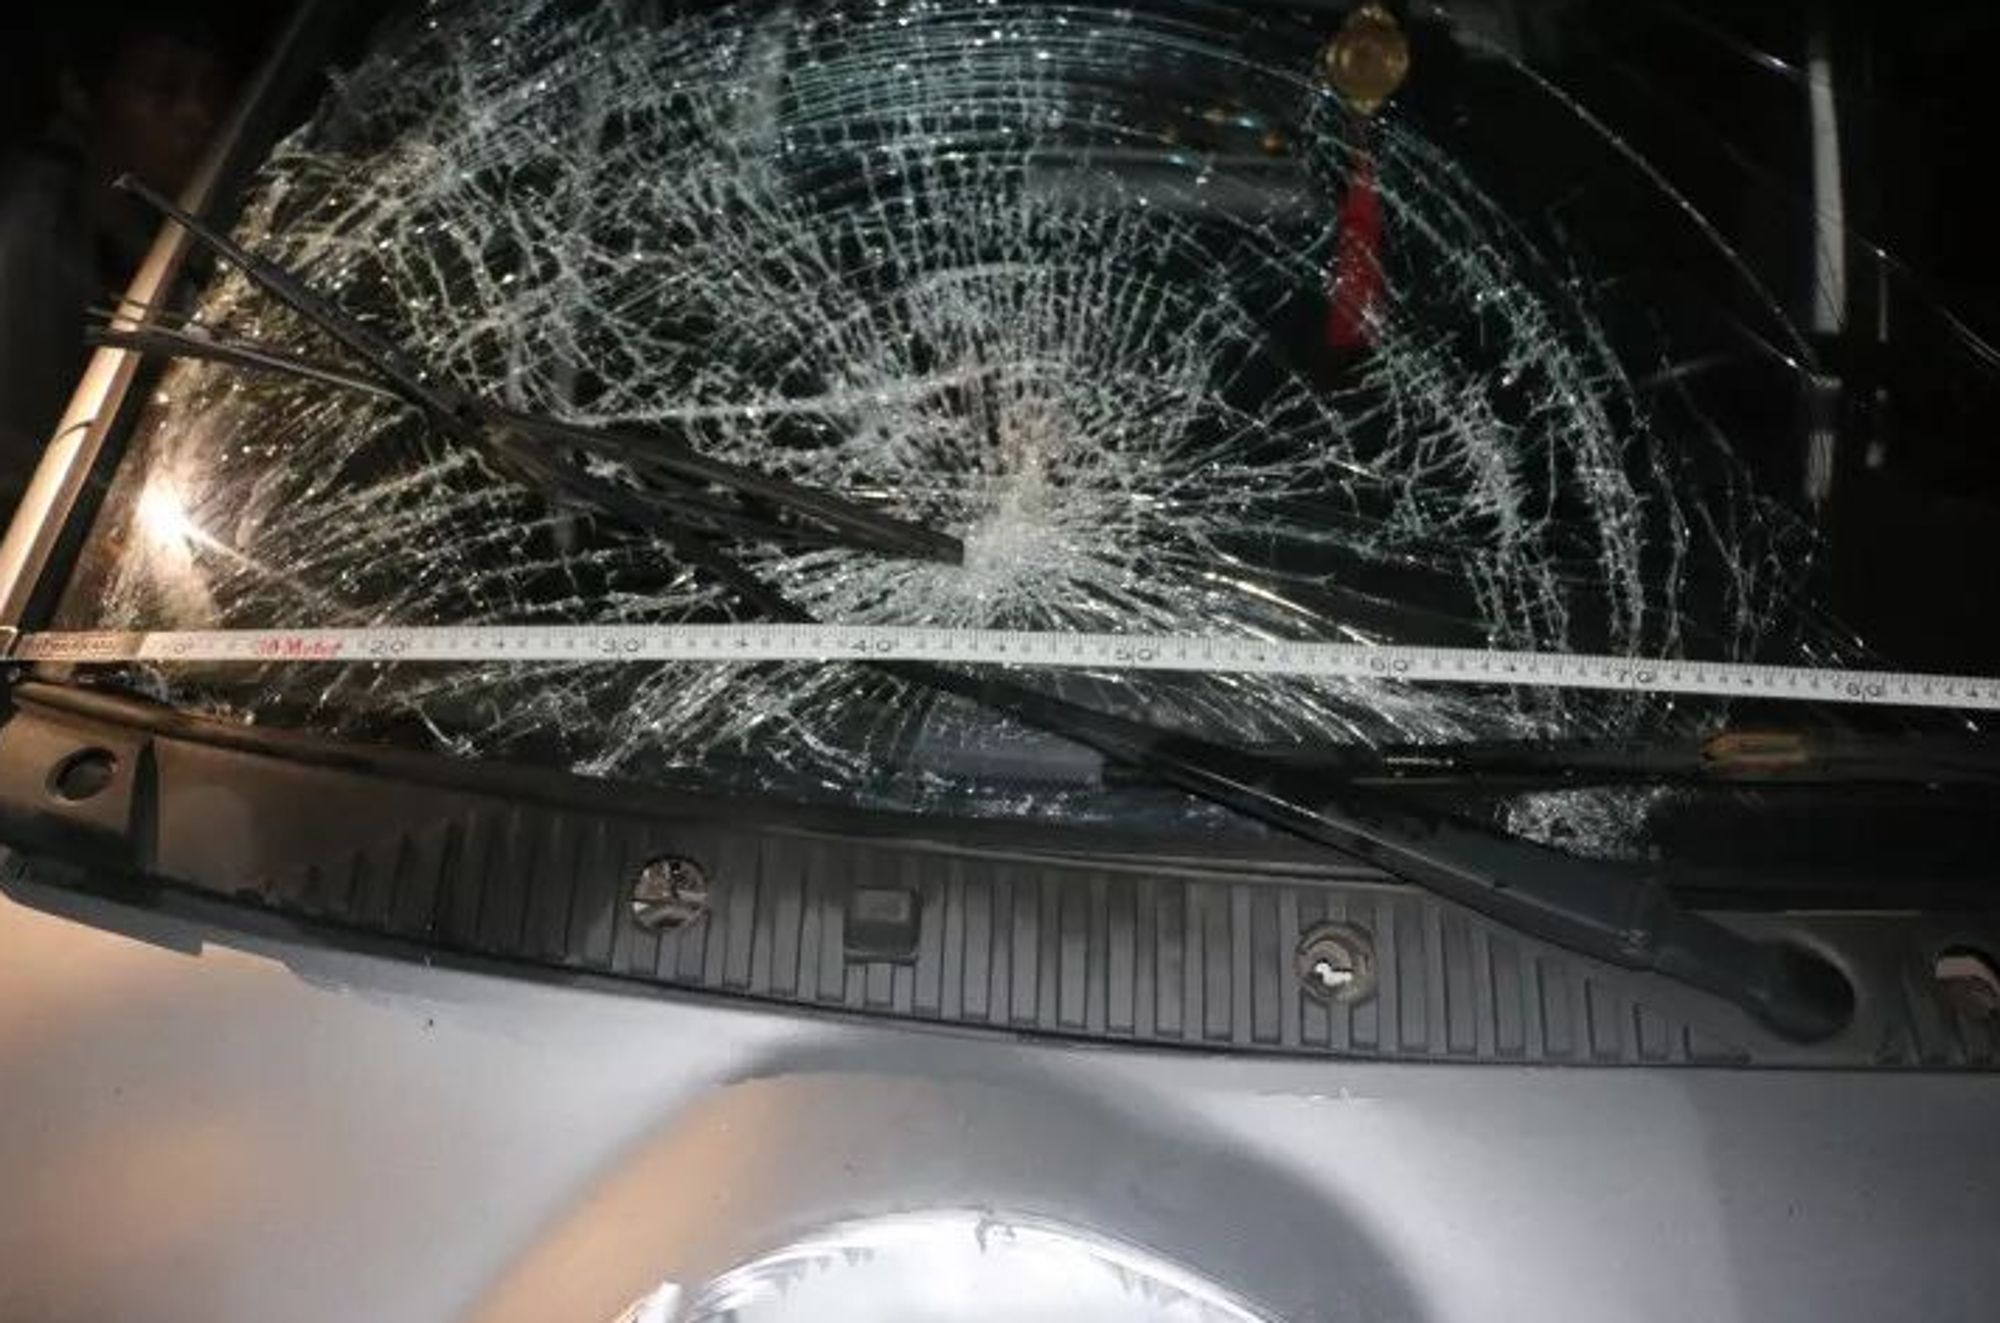 Damage to the car that struck the husband. Credit: AsiaWire